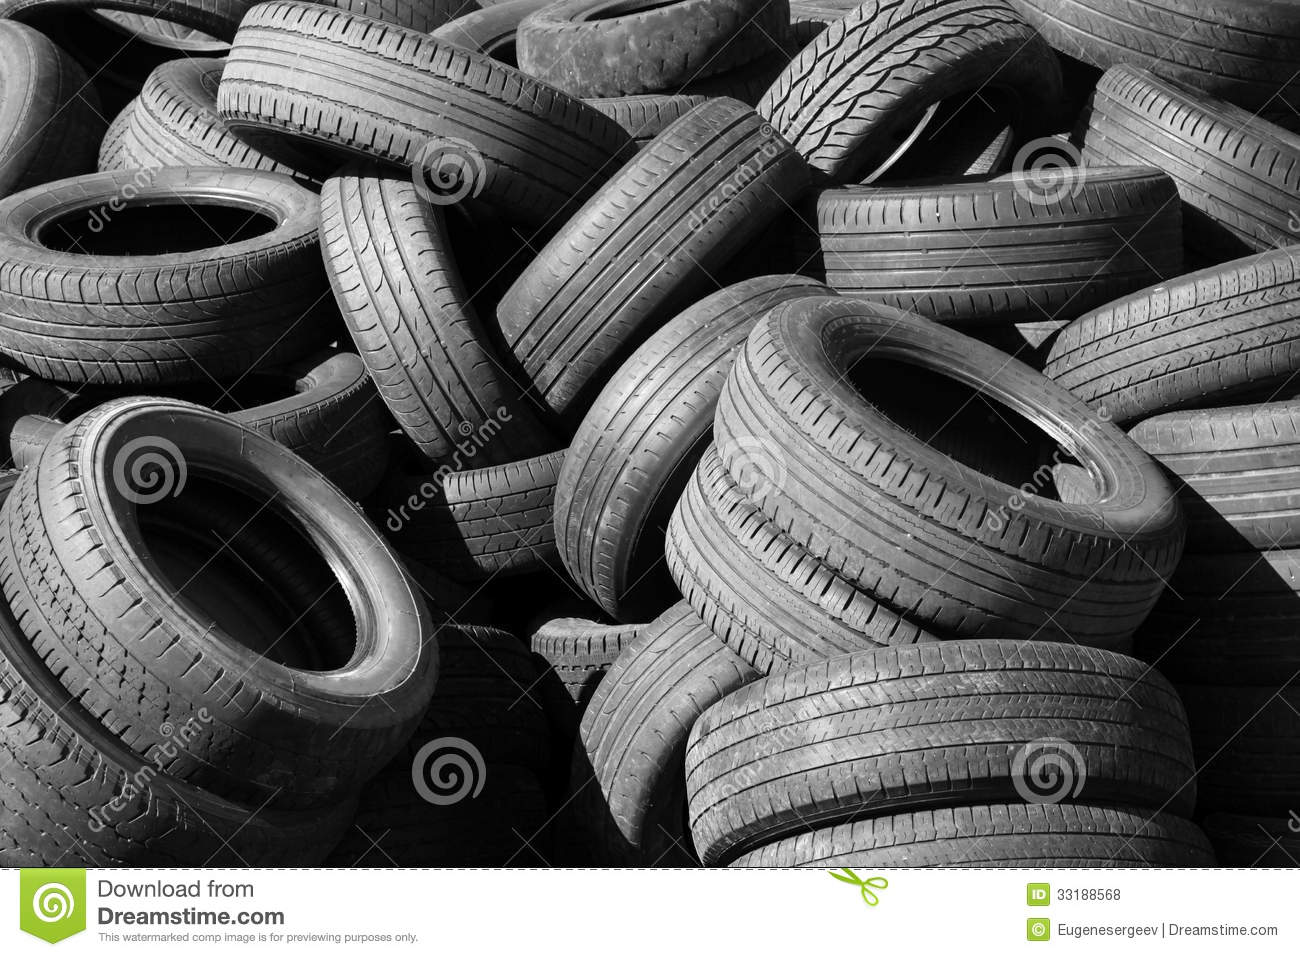 Pile of old automotive tires